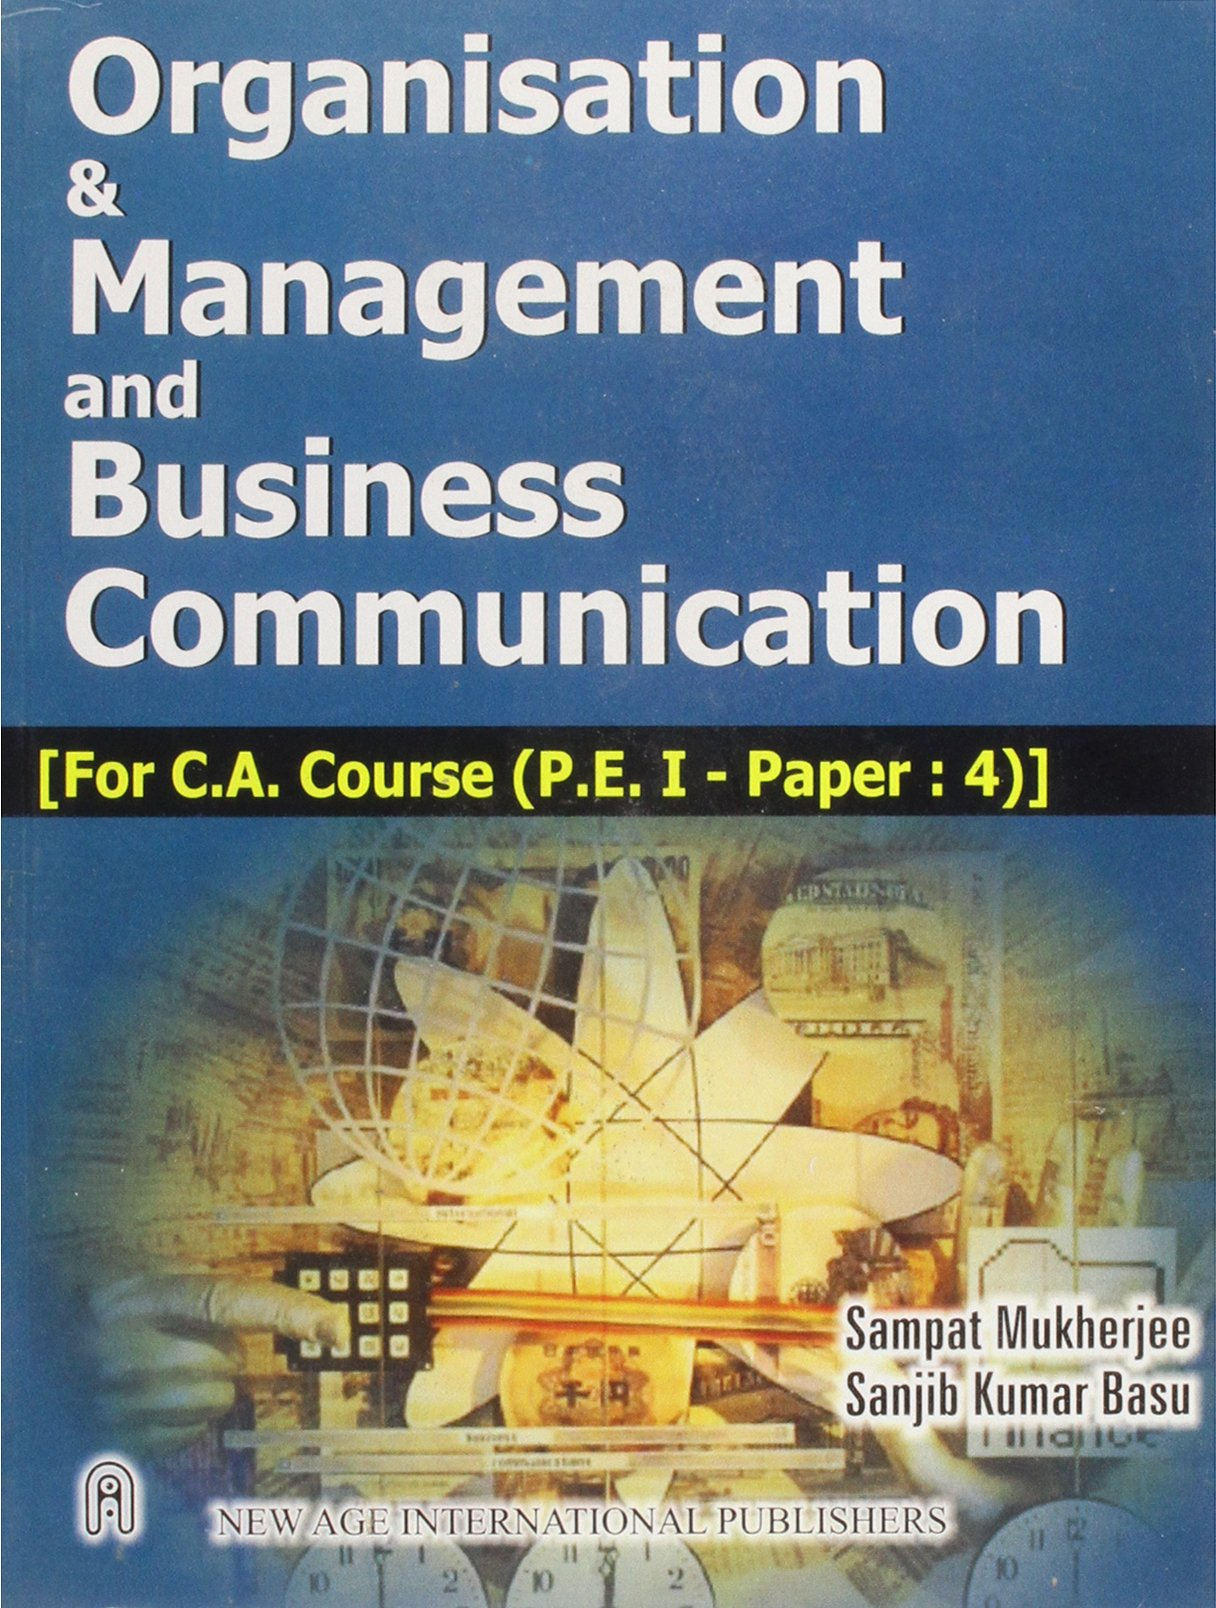 Organisation and Management and Business Communication PDF